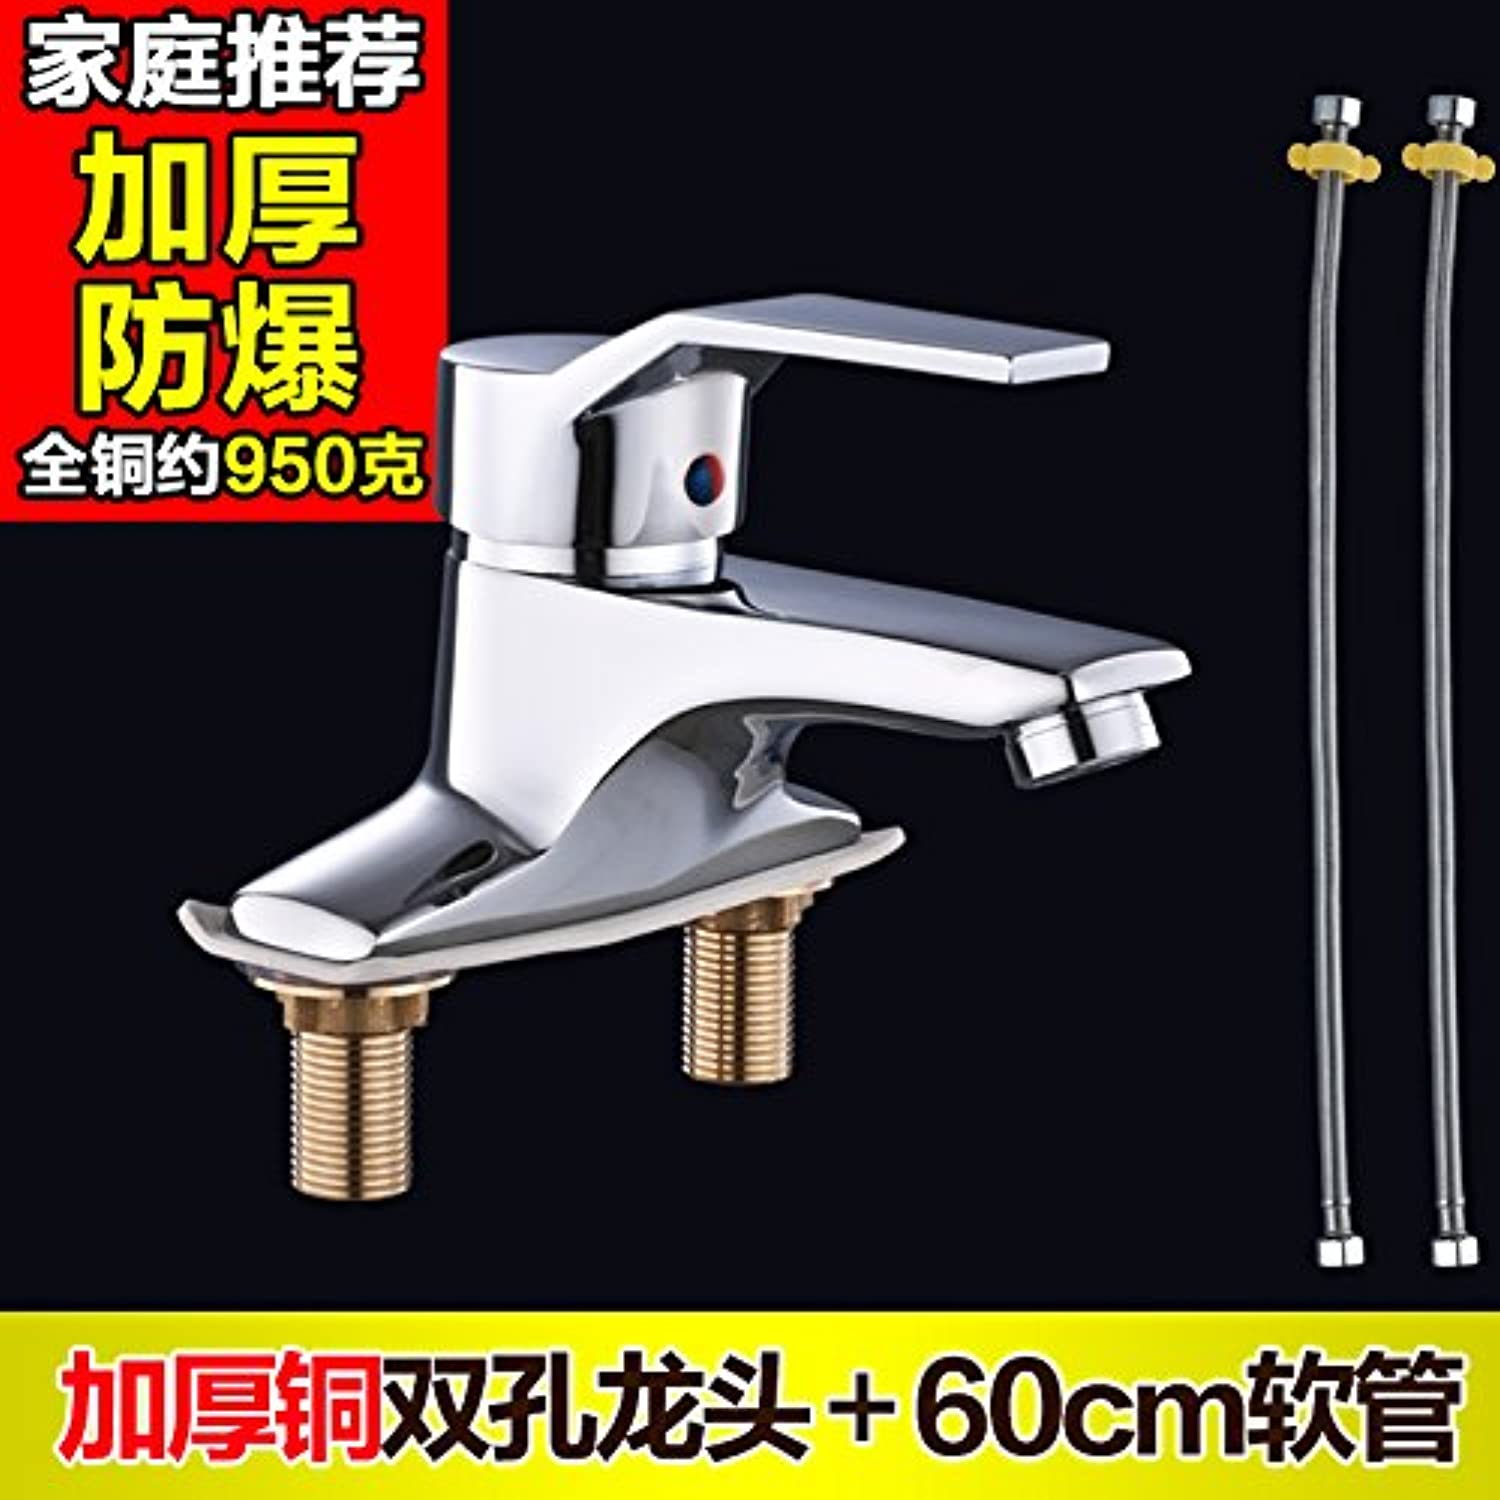 SunZICold and hot water tap copper double basin faucet sink three basin wash basin wash basin faucet,D general (copper) faucet 60CM soft